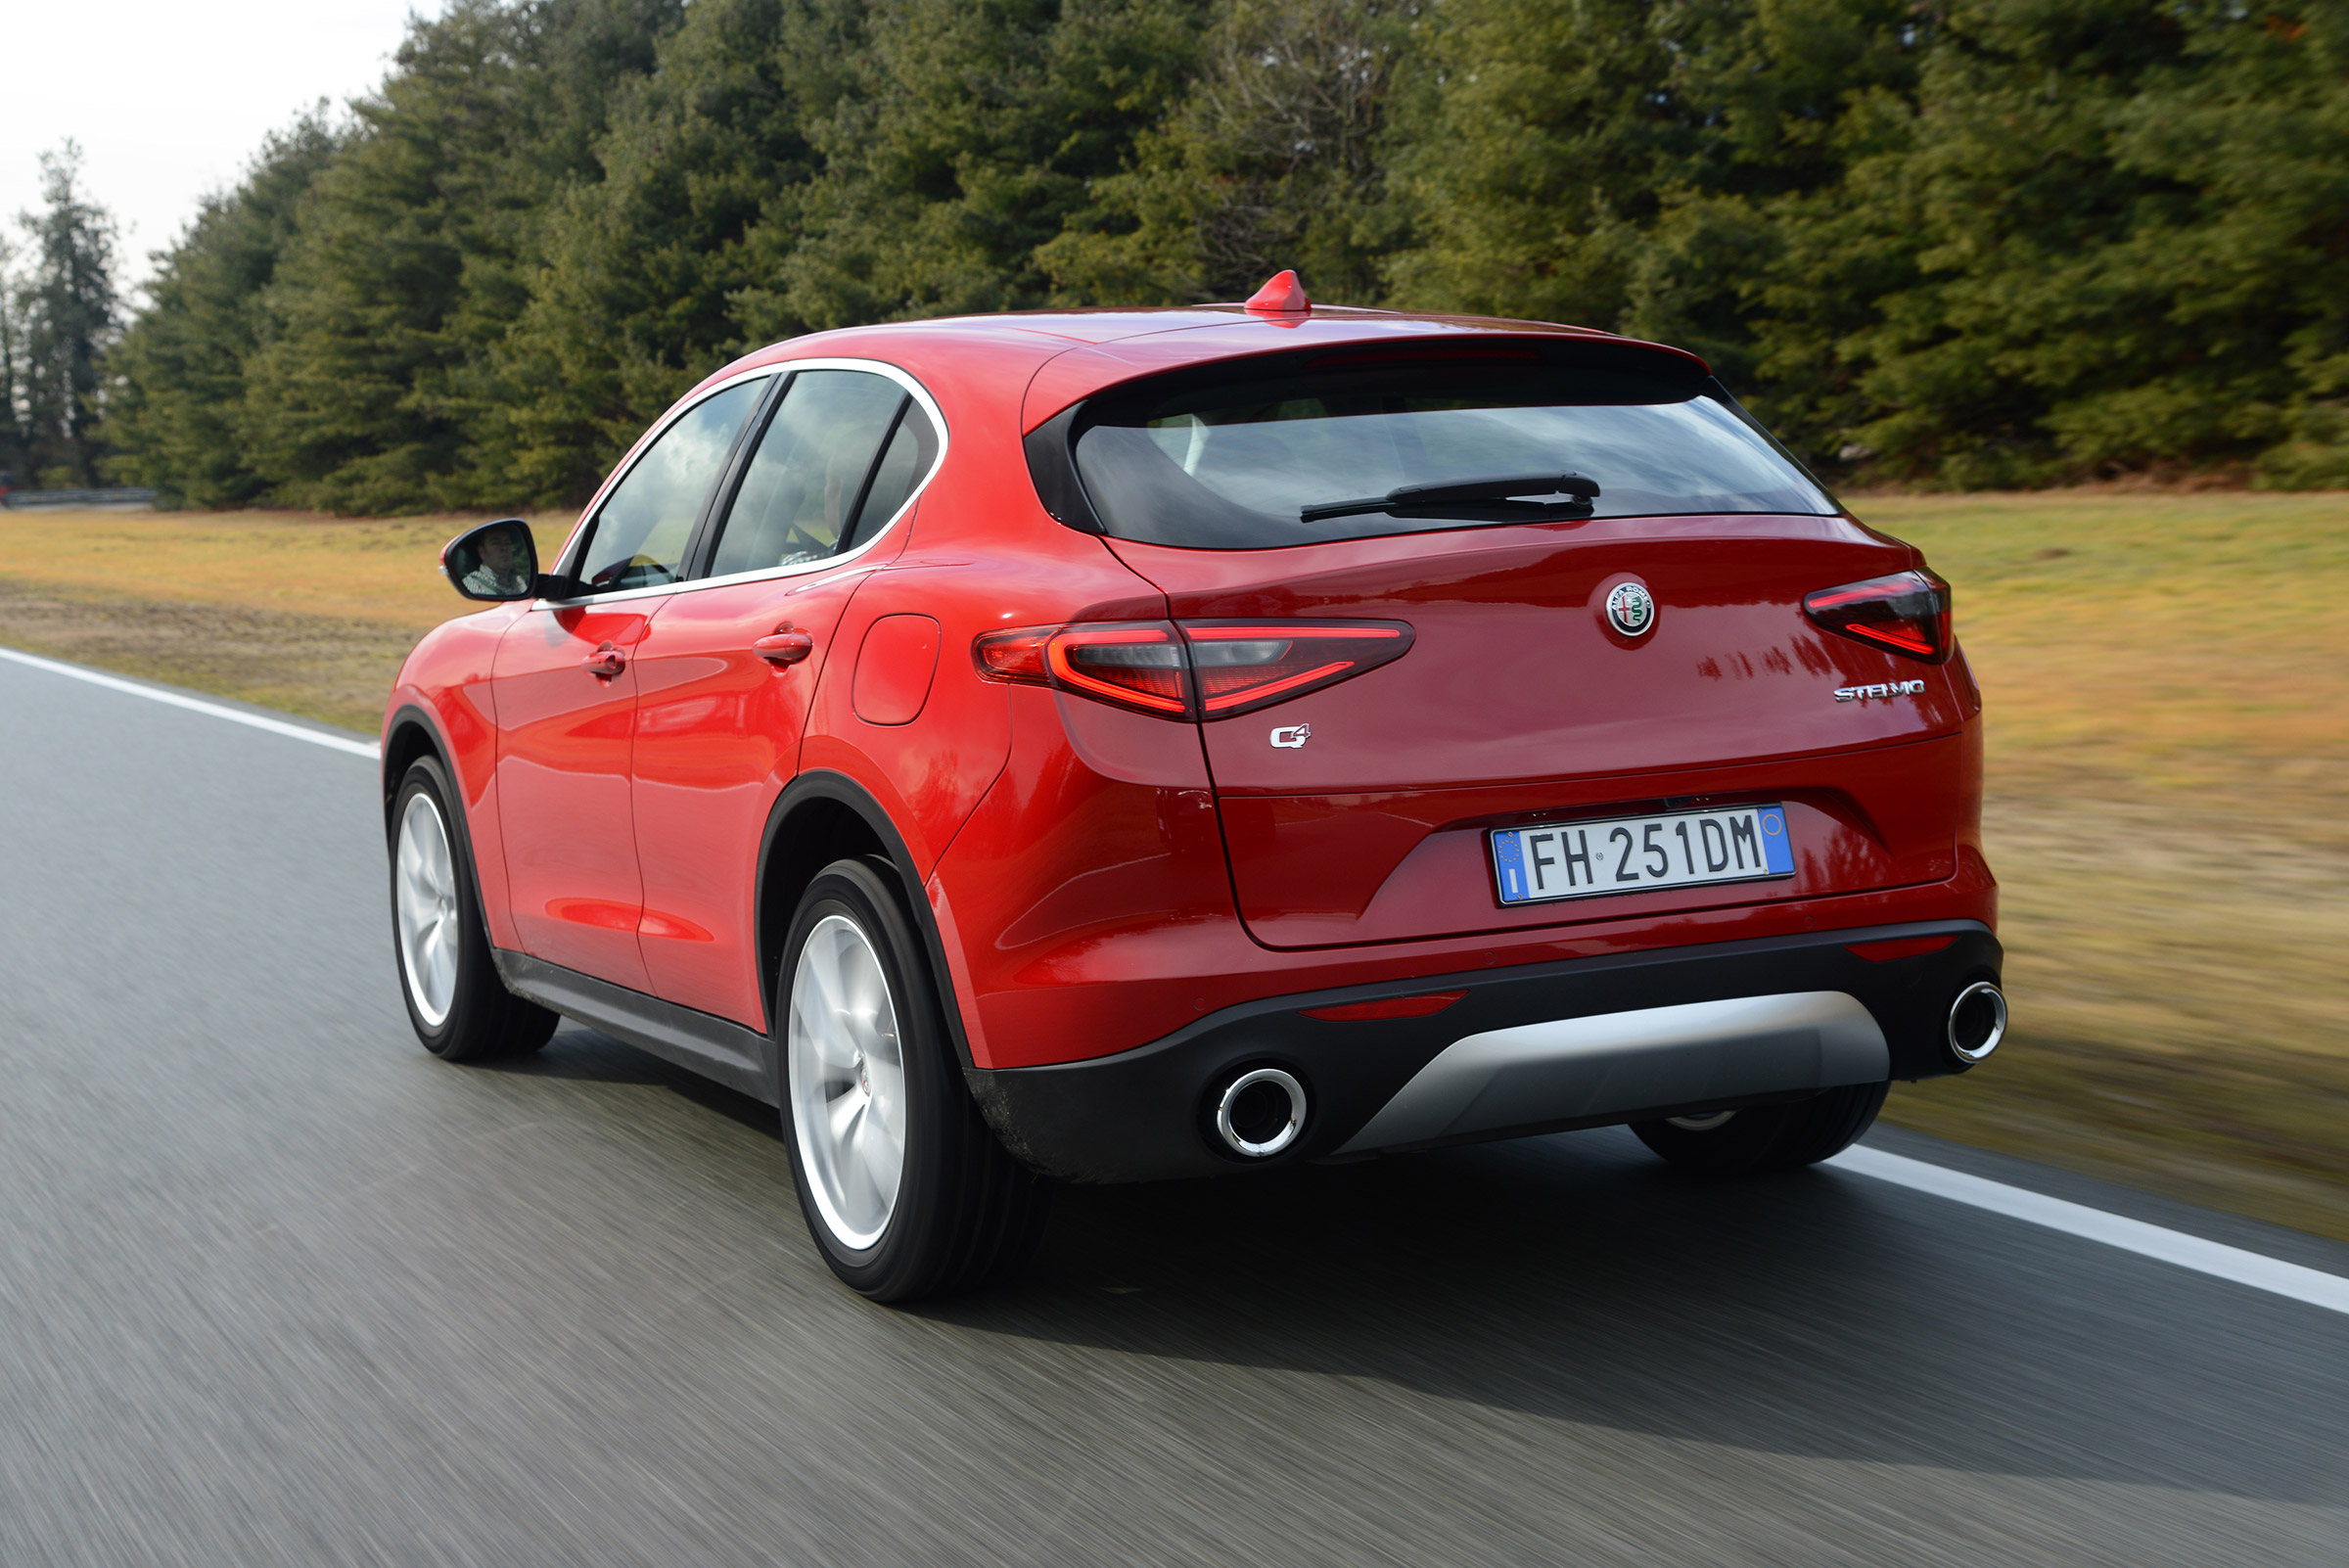 2017 Alfa Romeo Stelvio Test Drive Rear And Side View (Photo 21 of 23)